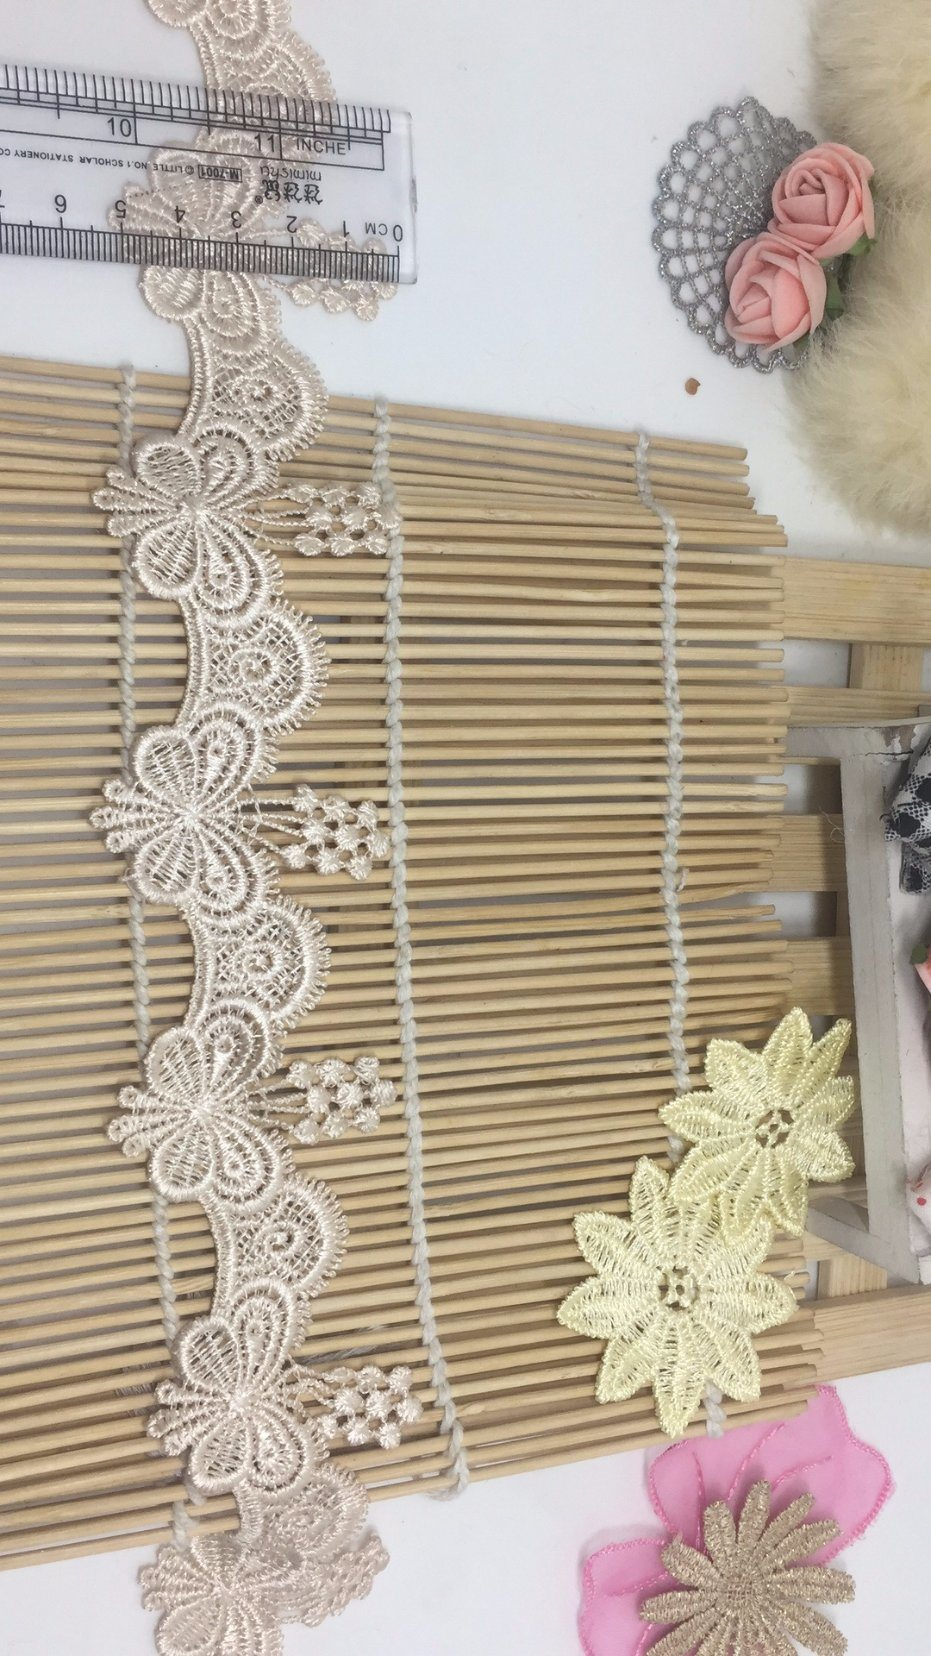 New 5.3cm Width Stock Butterfly Embroidery Water Soluable Trimming Lace for Girls′ Dresses & Garment Accessories & Beddings & Placemats